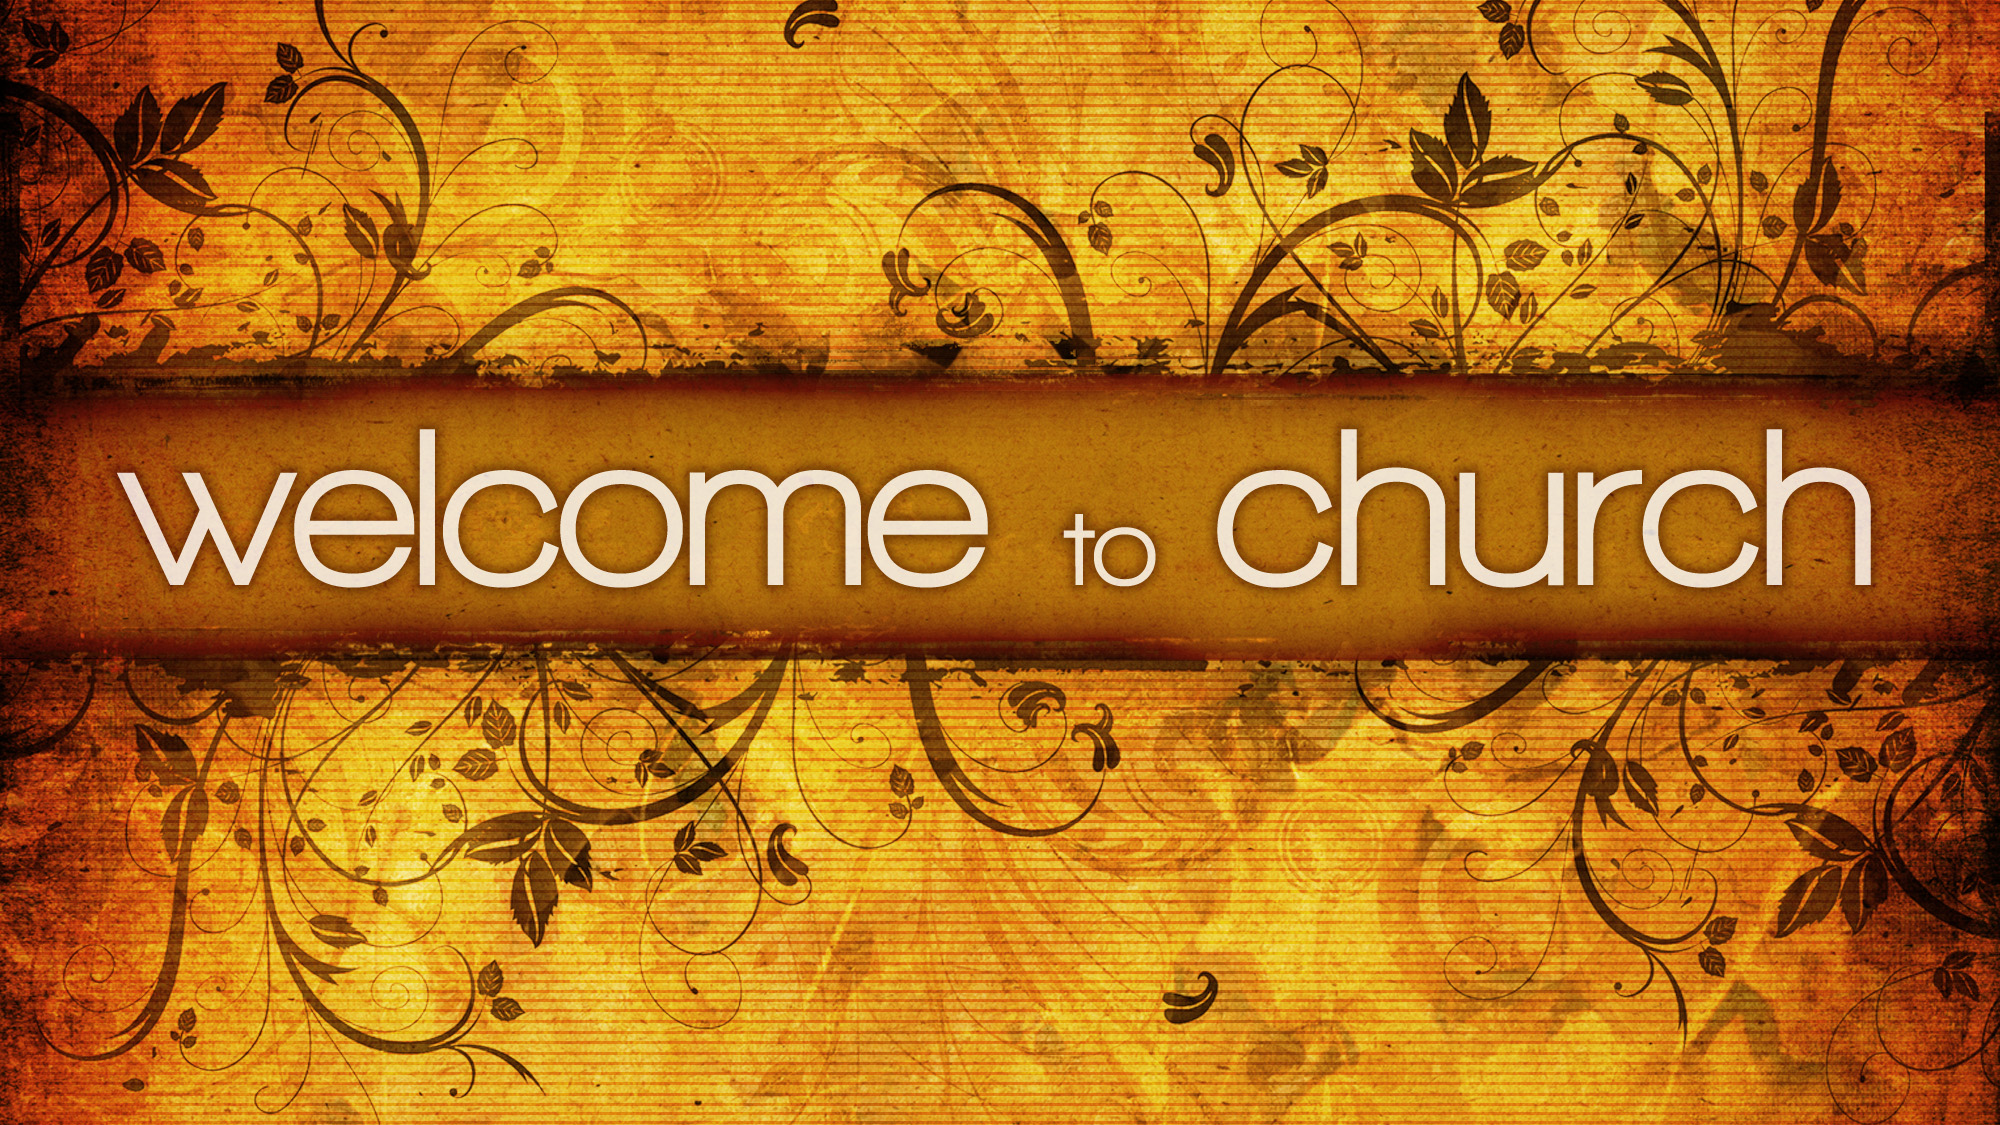 Welcome church visitor clipart.